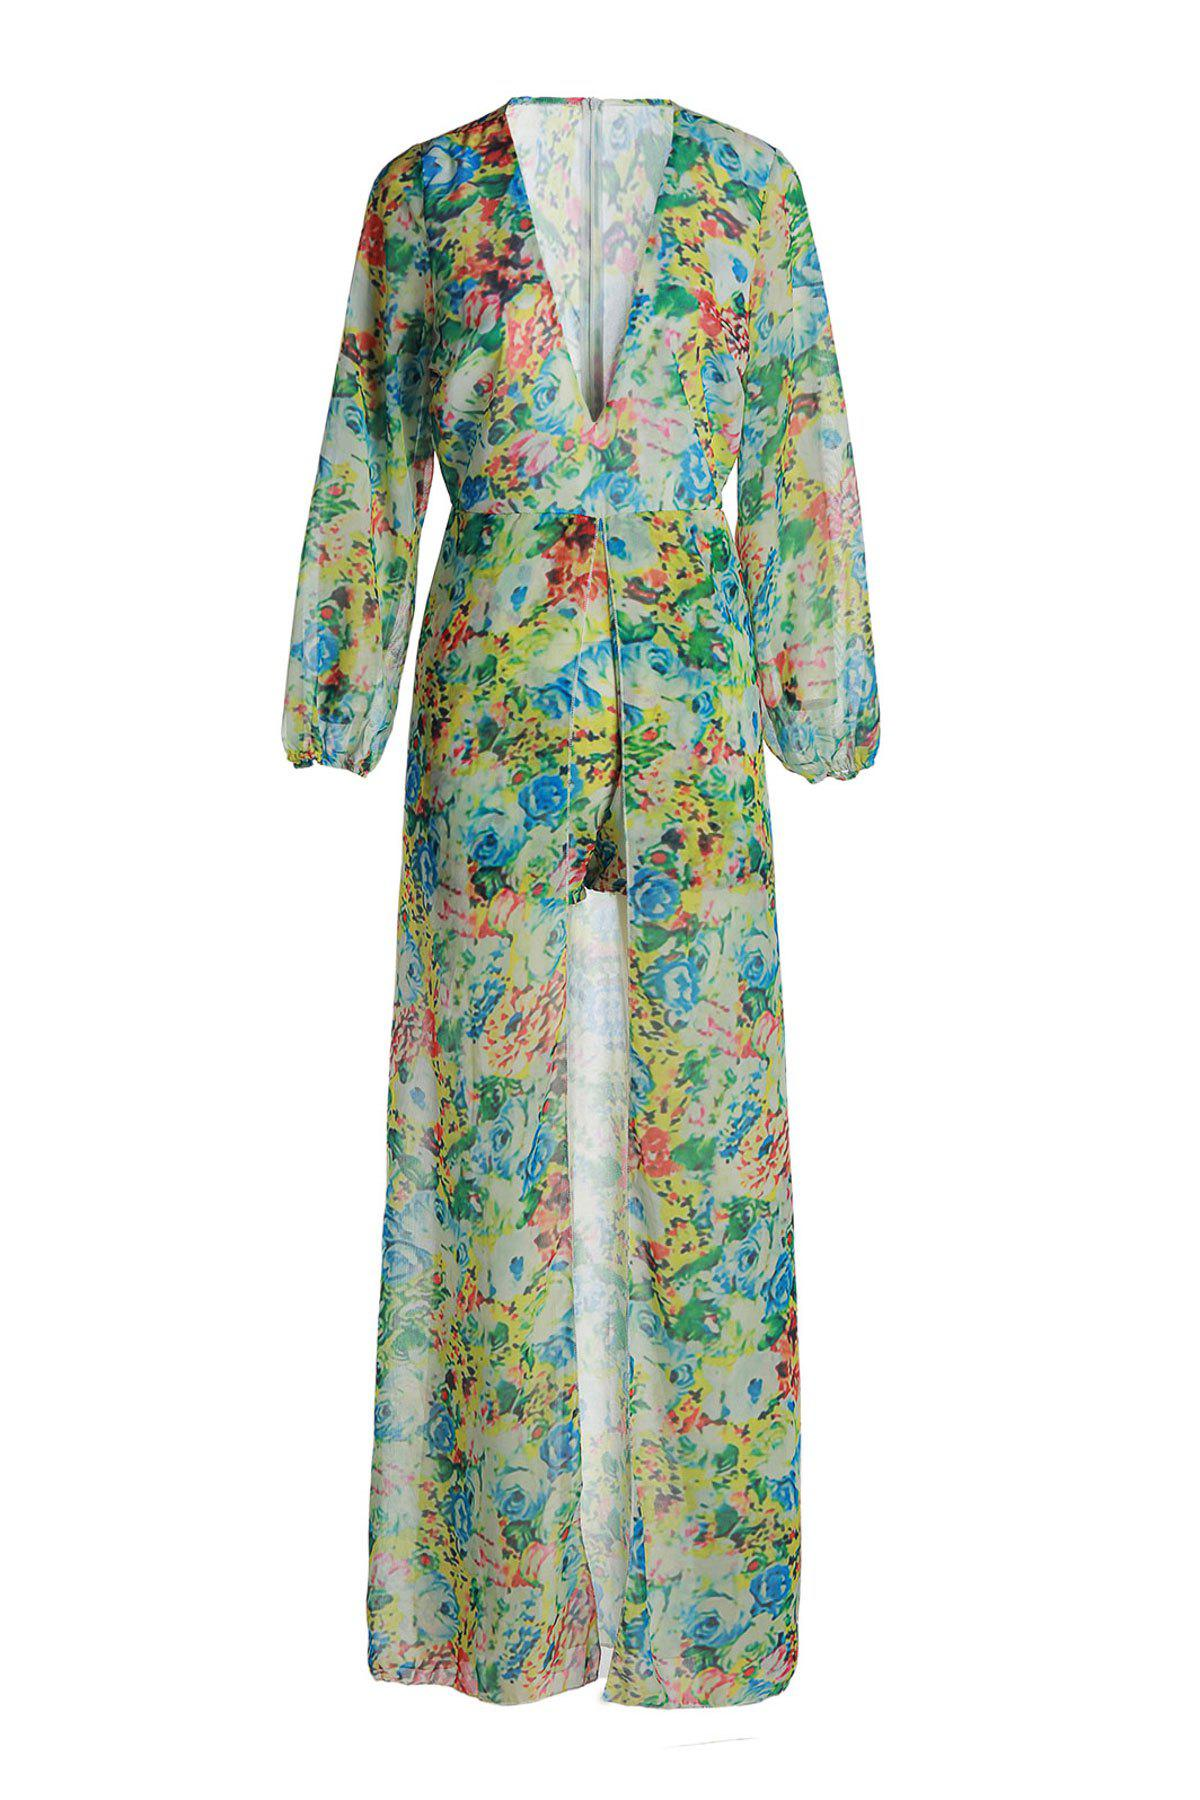 Shop Refreshing Plunging Neck Floral Printed High Low Romper For Women